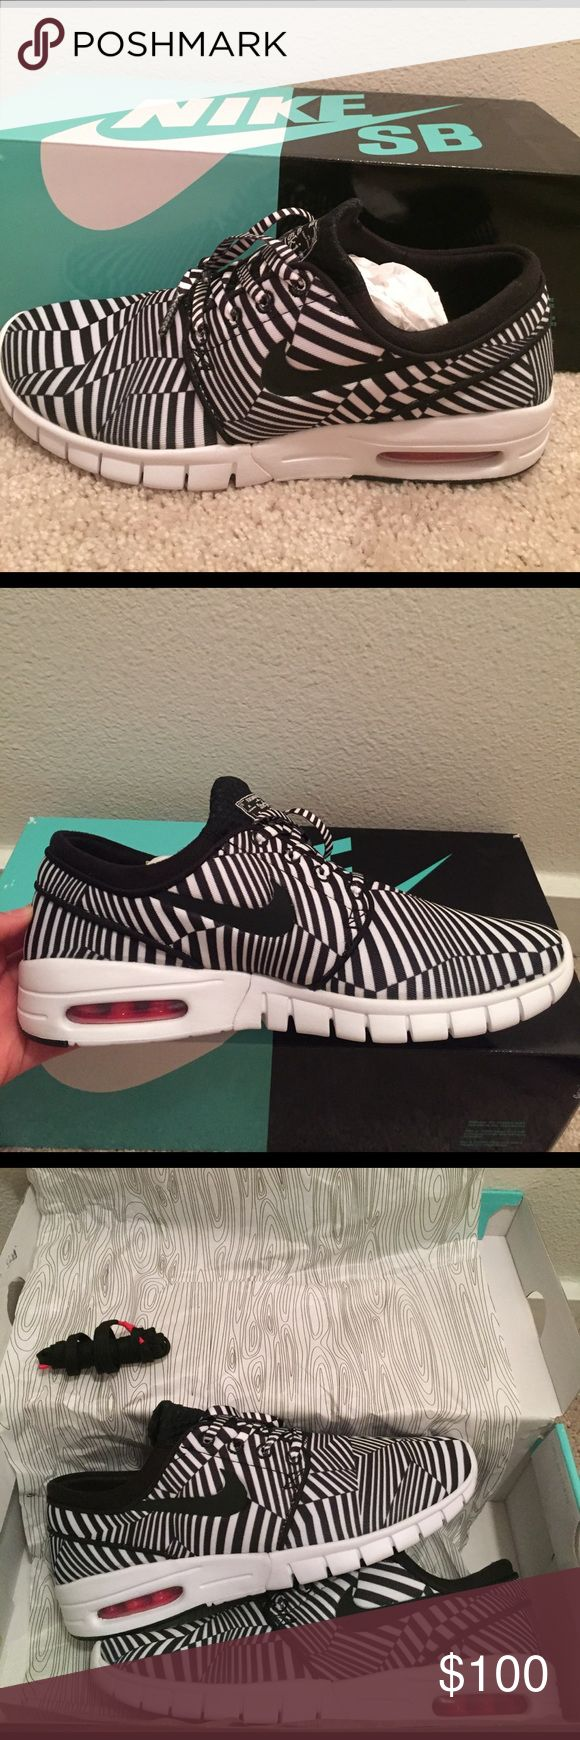 Nike Stefan Janoski Max QS Nike Janoski skate/casual shoe | NEW in box | NWT | Limited Edition Design Nike Shoes Athletic Shoes